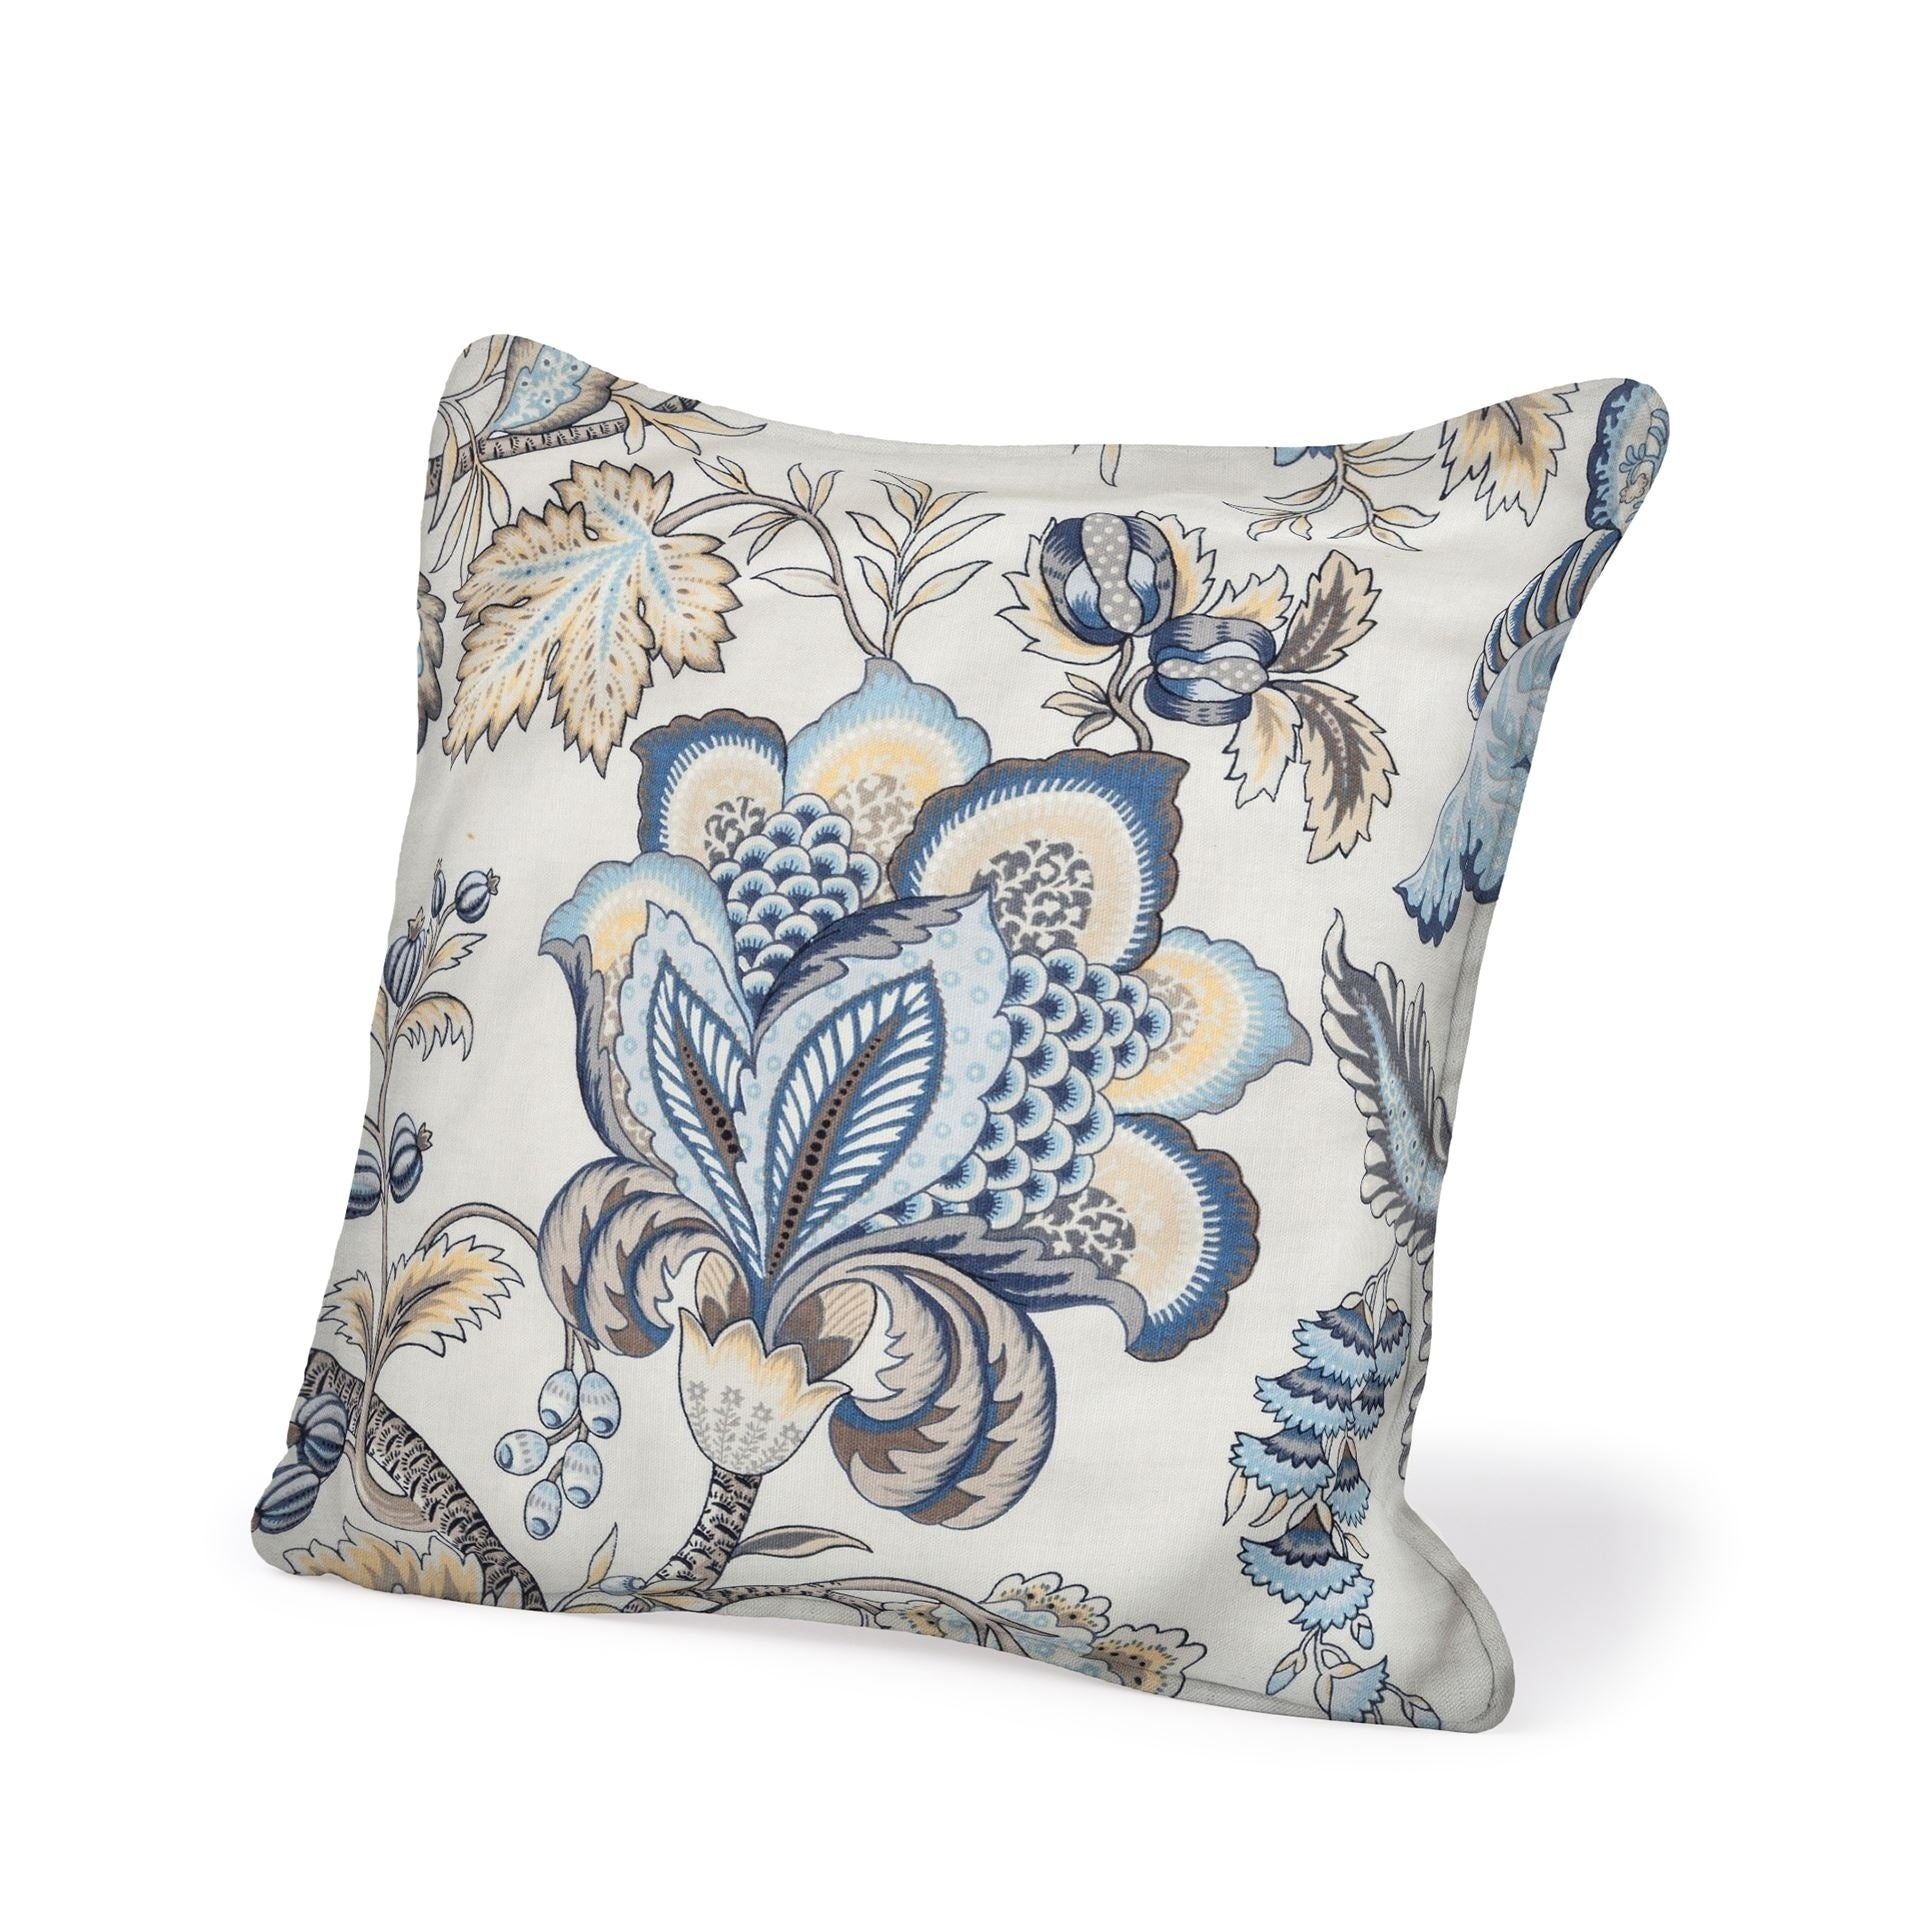 Mercana Gladious II 20 x 20 (cover only) Decorative Pillow